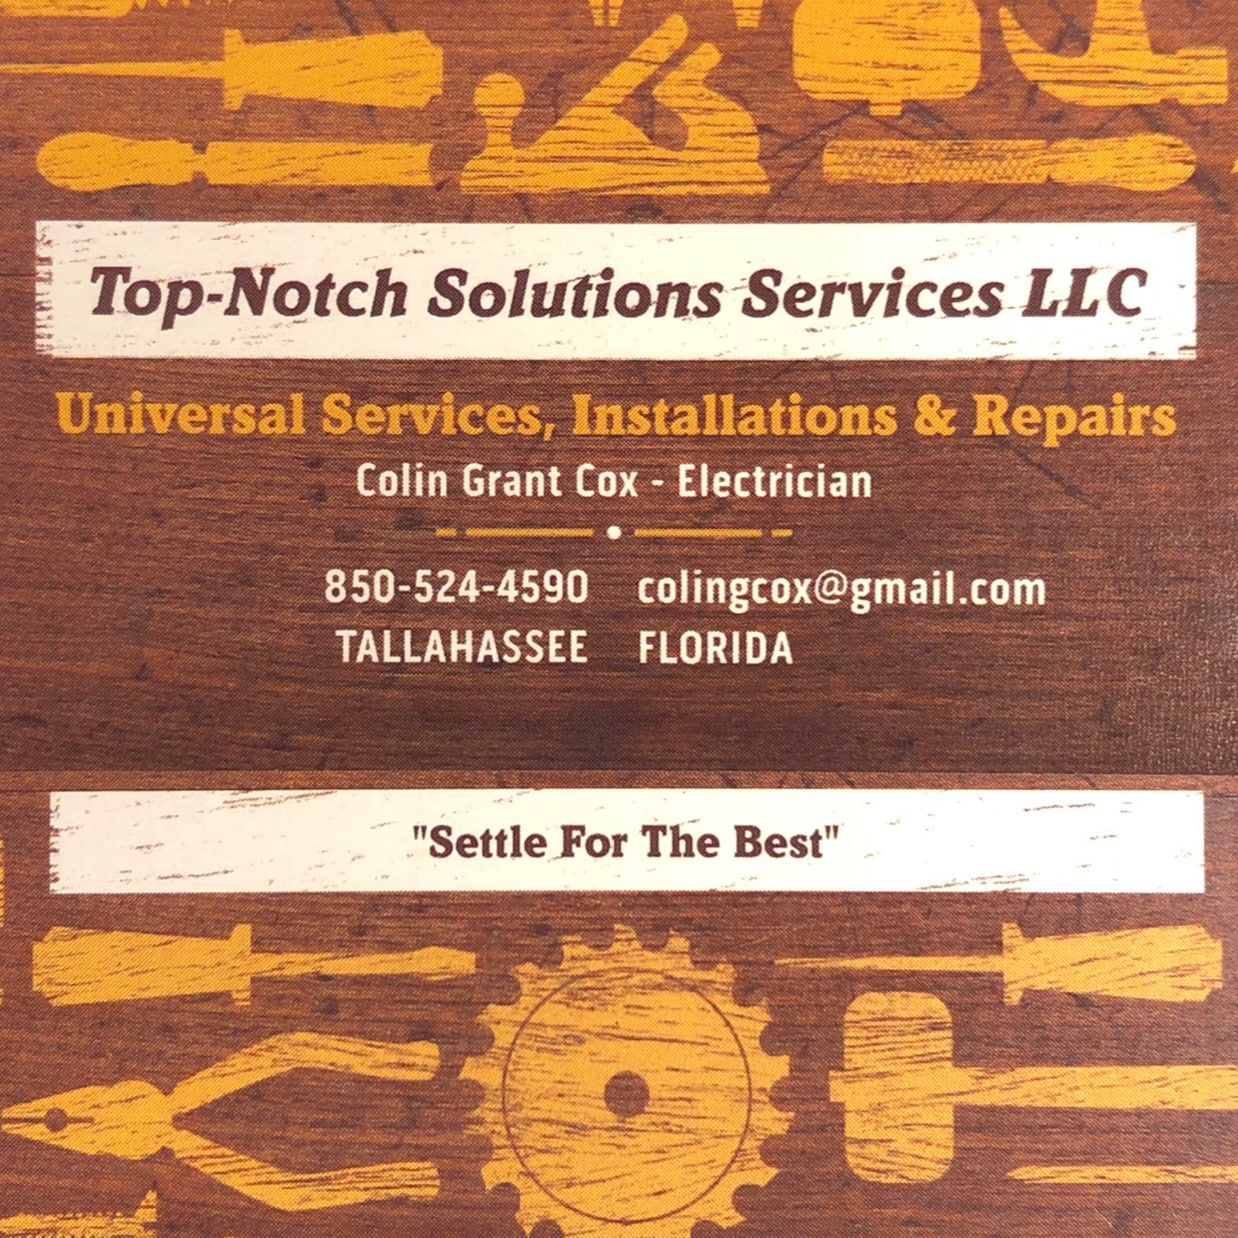 Top-Notch Solutions Services L.L.C.